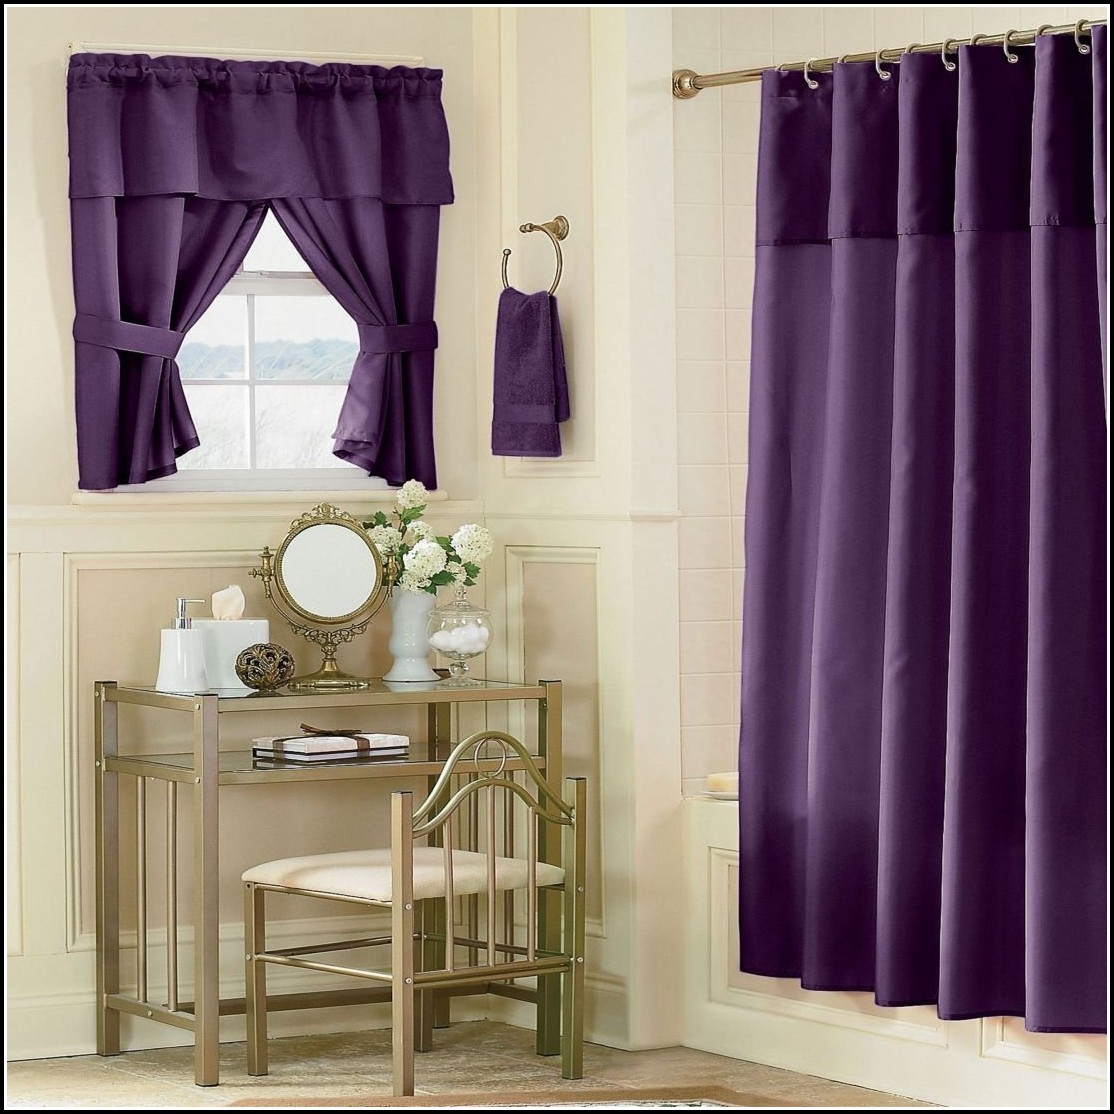 Curtains For Bathroom Window In Shower